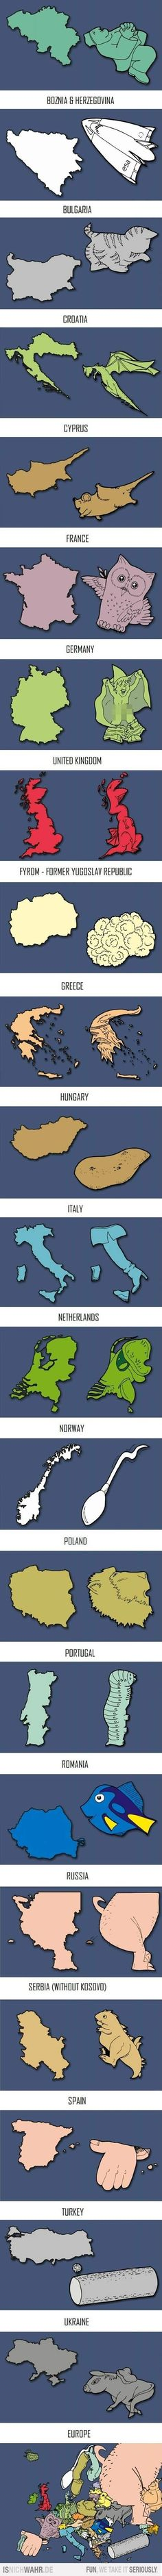 Funny pictures about Europe according to creative people. Oh, and cool pics about Europe according to creative people. Also, Europe according to creative people. Teaching Geography, World Geography, Geography Lessons, Teaching Kids, Chuck Norris, European Countries, Creative People, Smart People, Best Funny Pictures